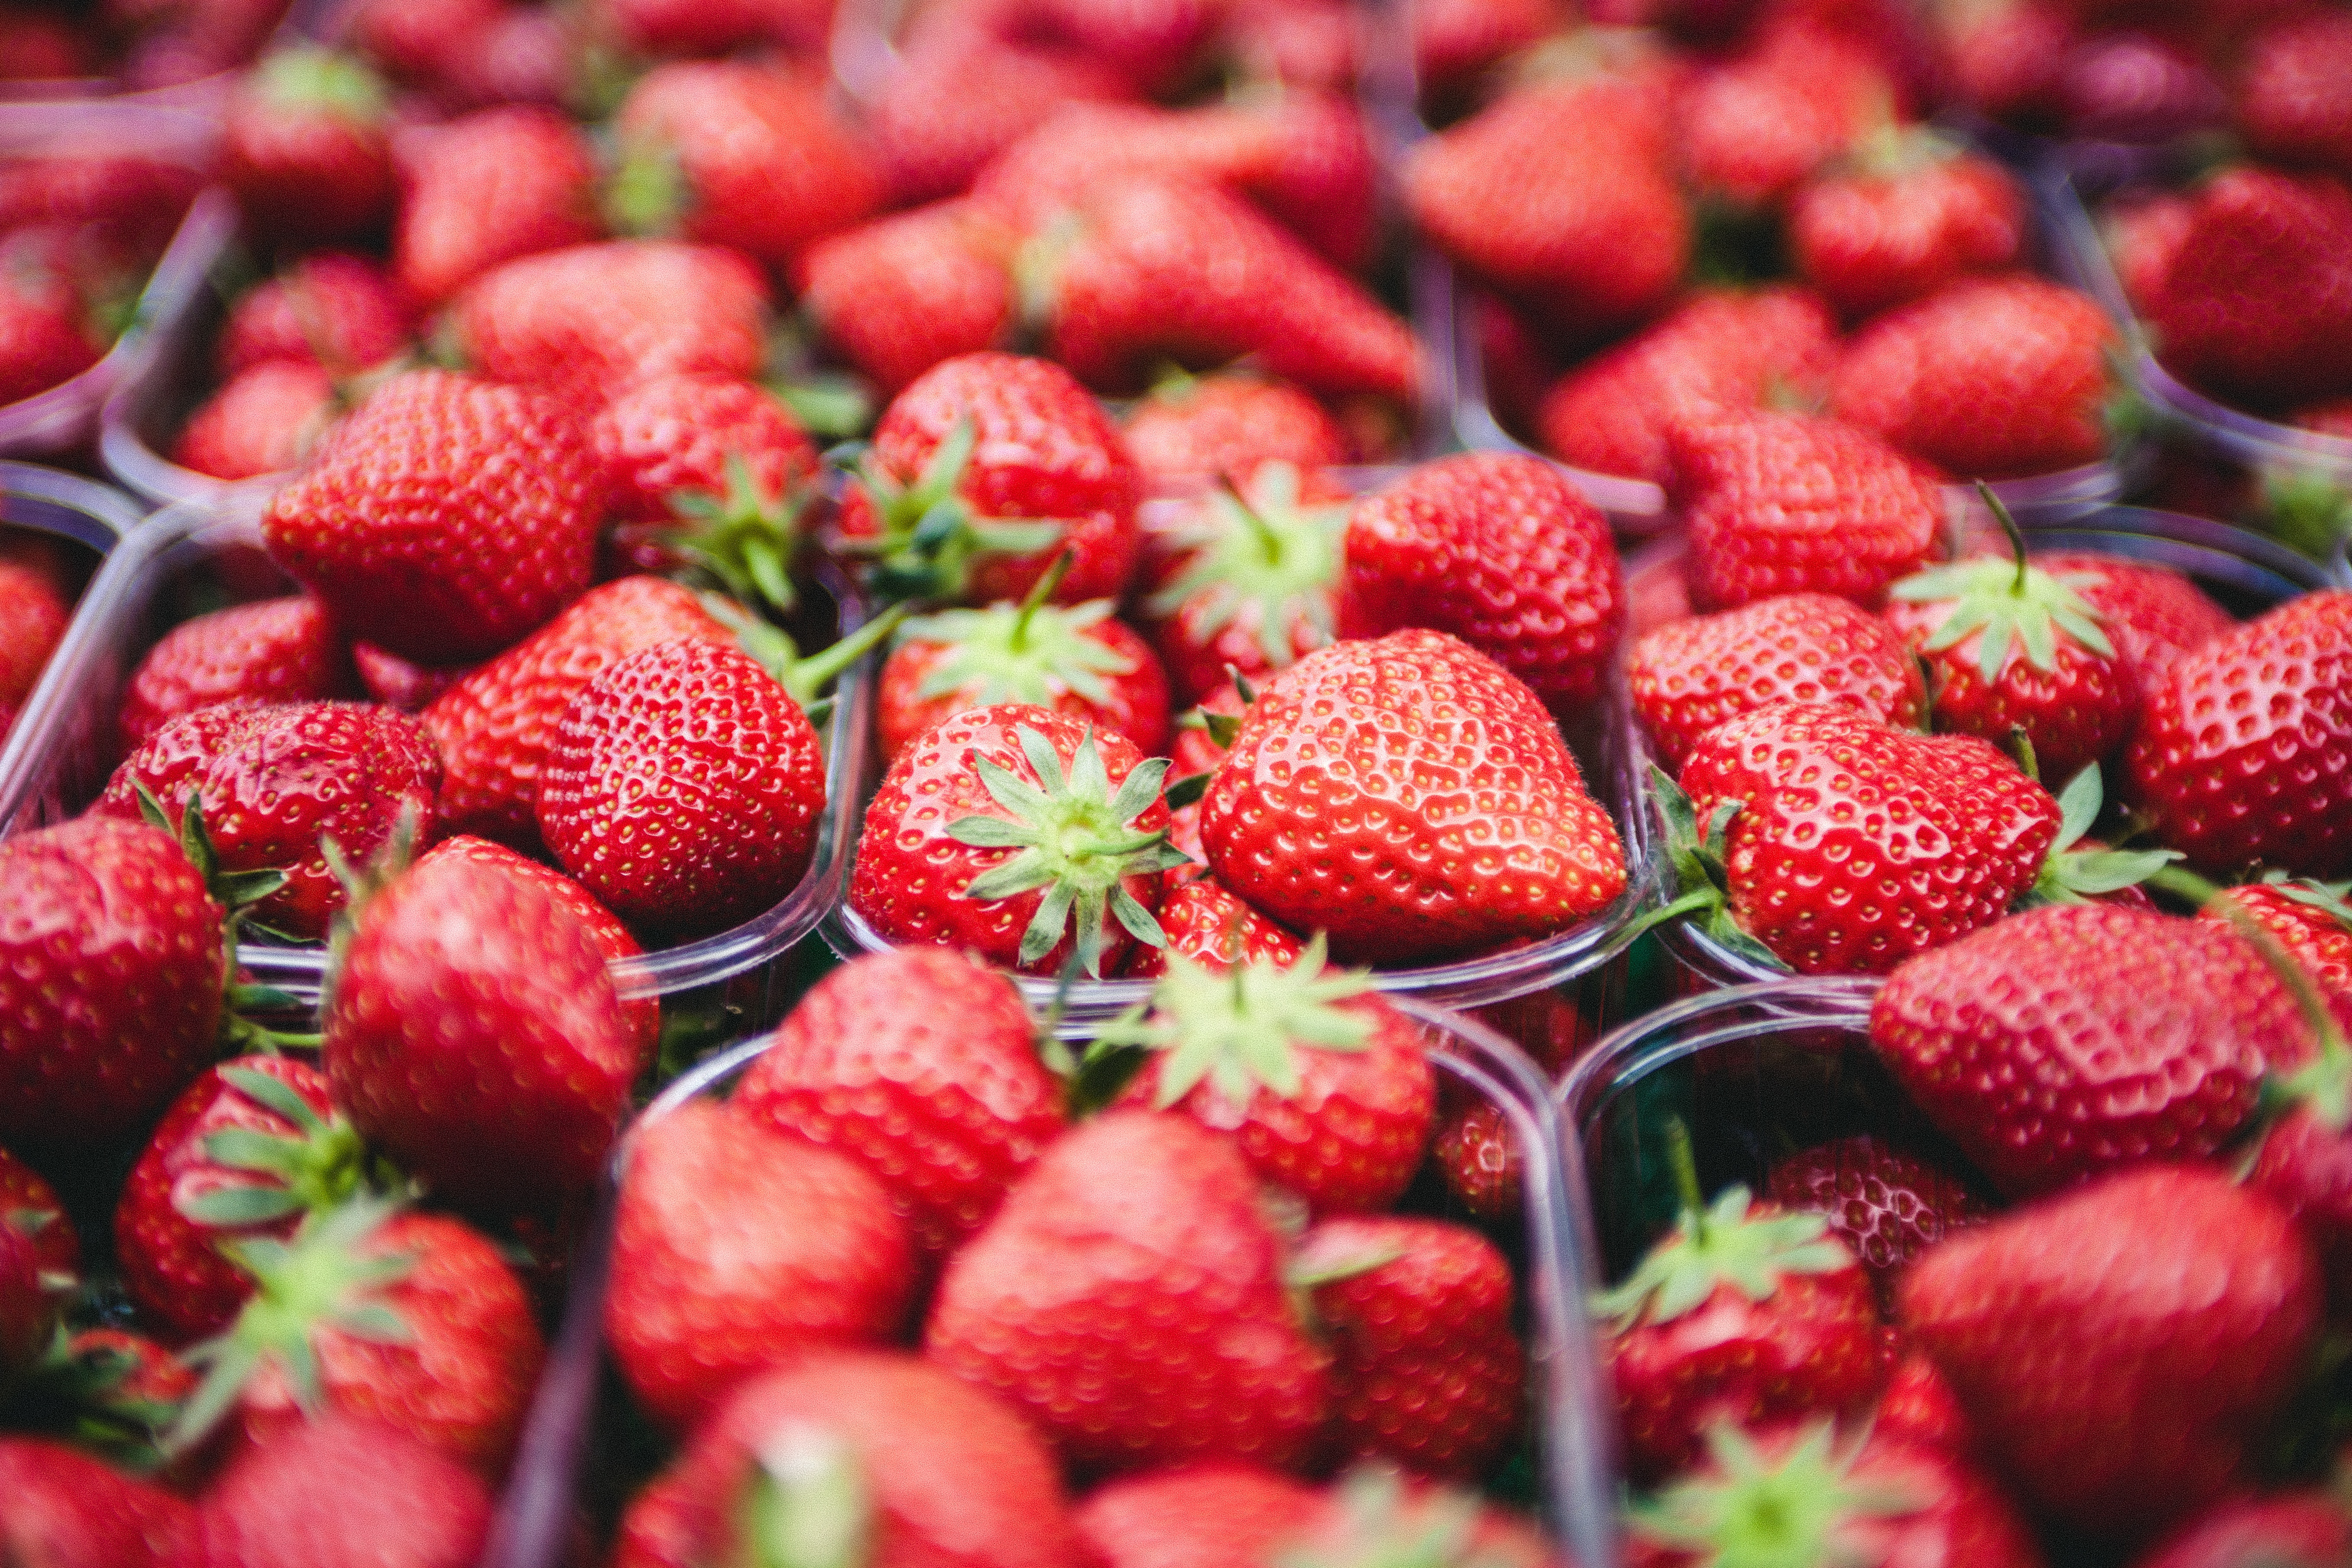 Pesticides in Food May Reduce Fertility